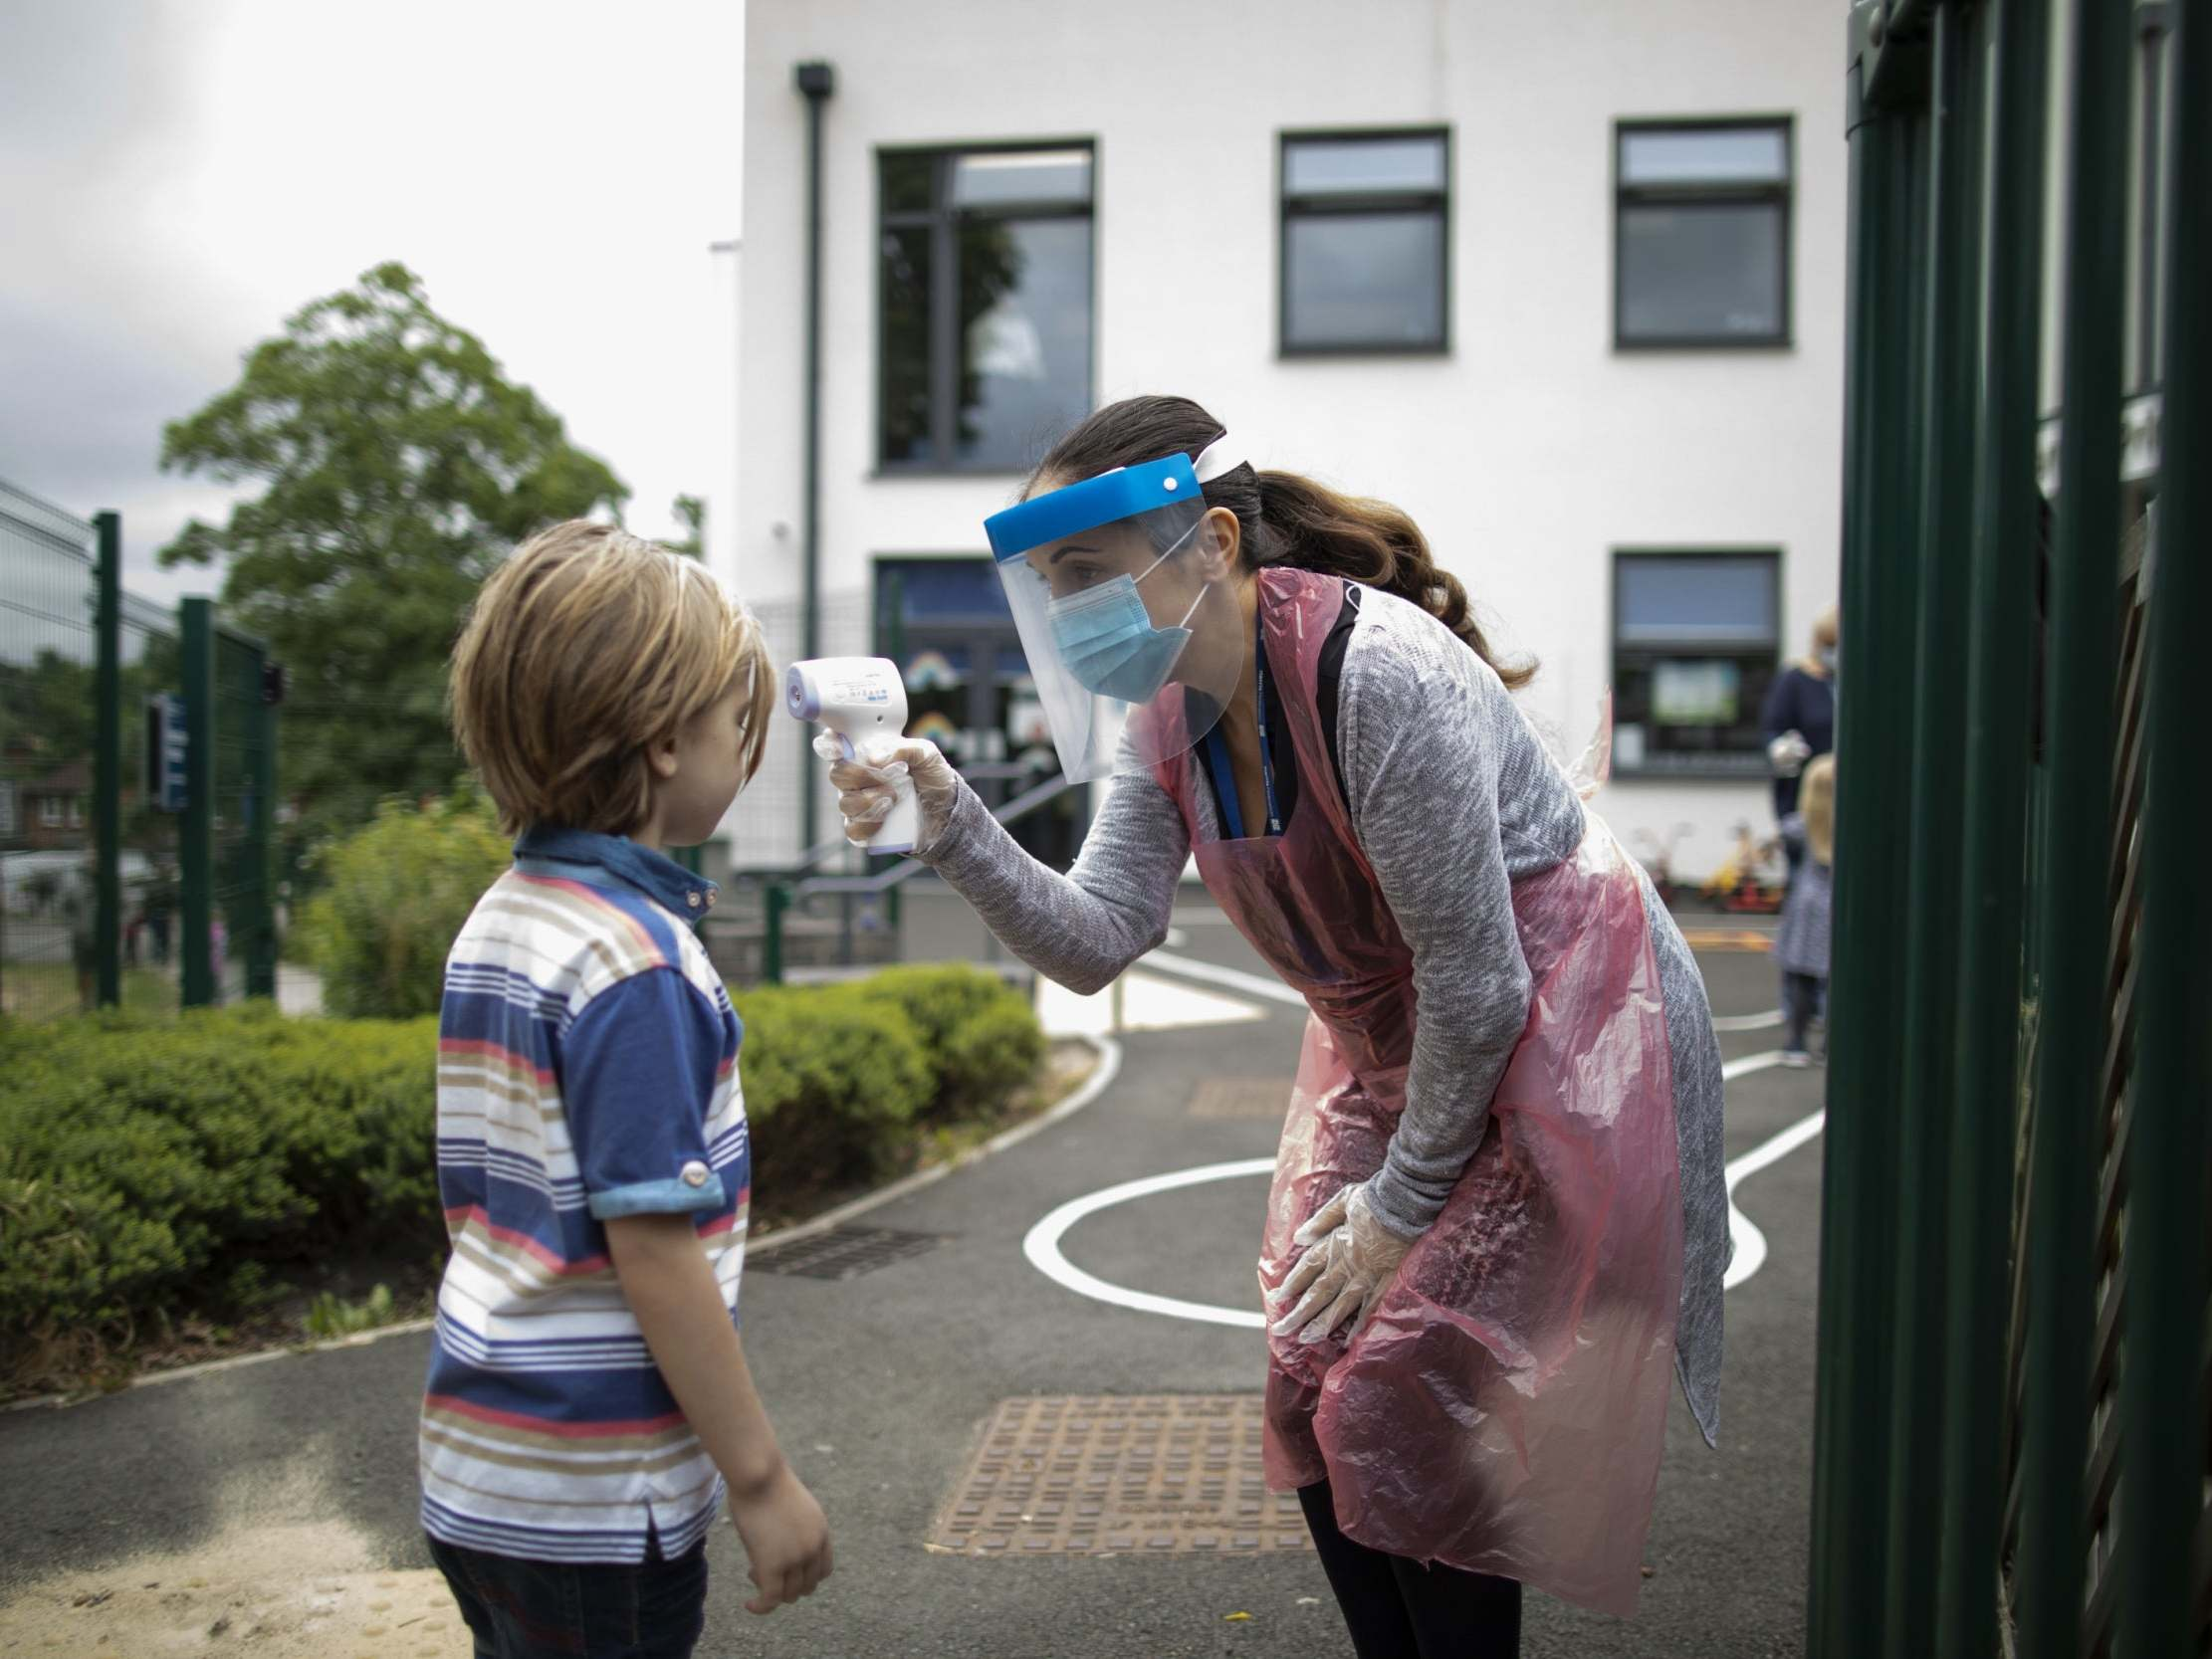 Children with coronavirus may have neurological instead of respiratory symptoms, study suggests